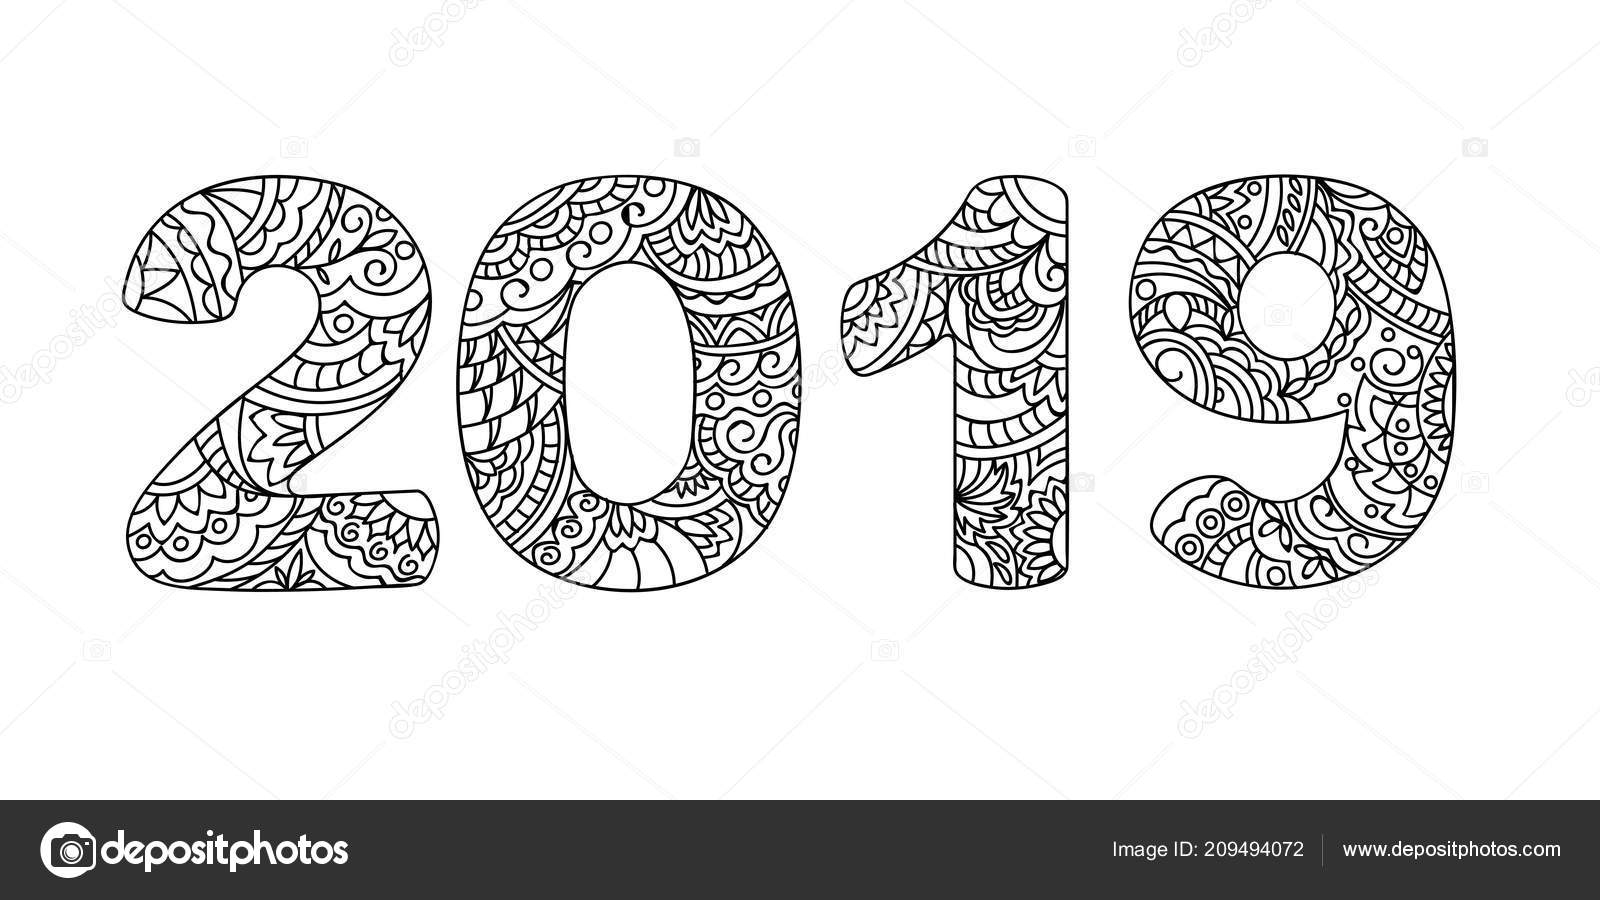 Handwritten Number 2019 Patterned Zen Tangle Shapes Isolated White